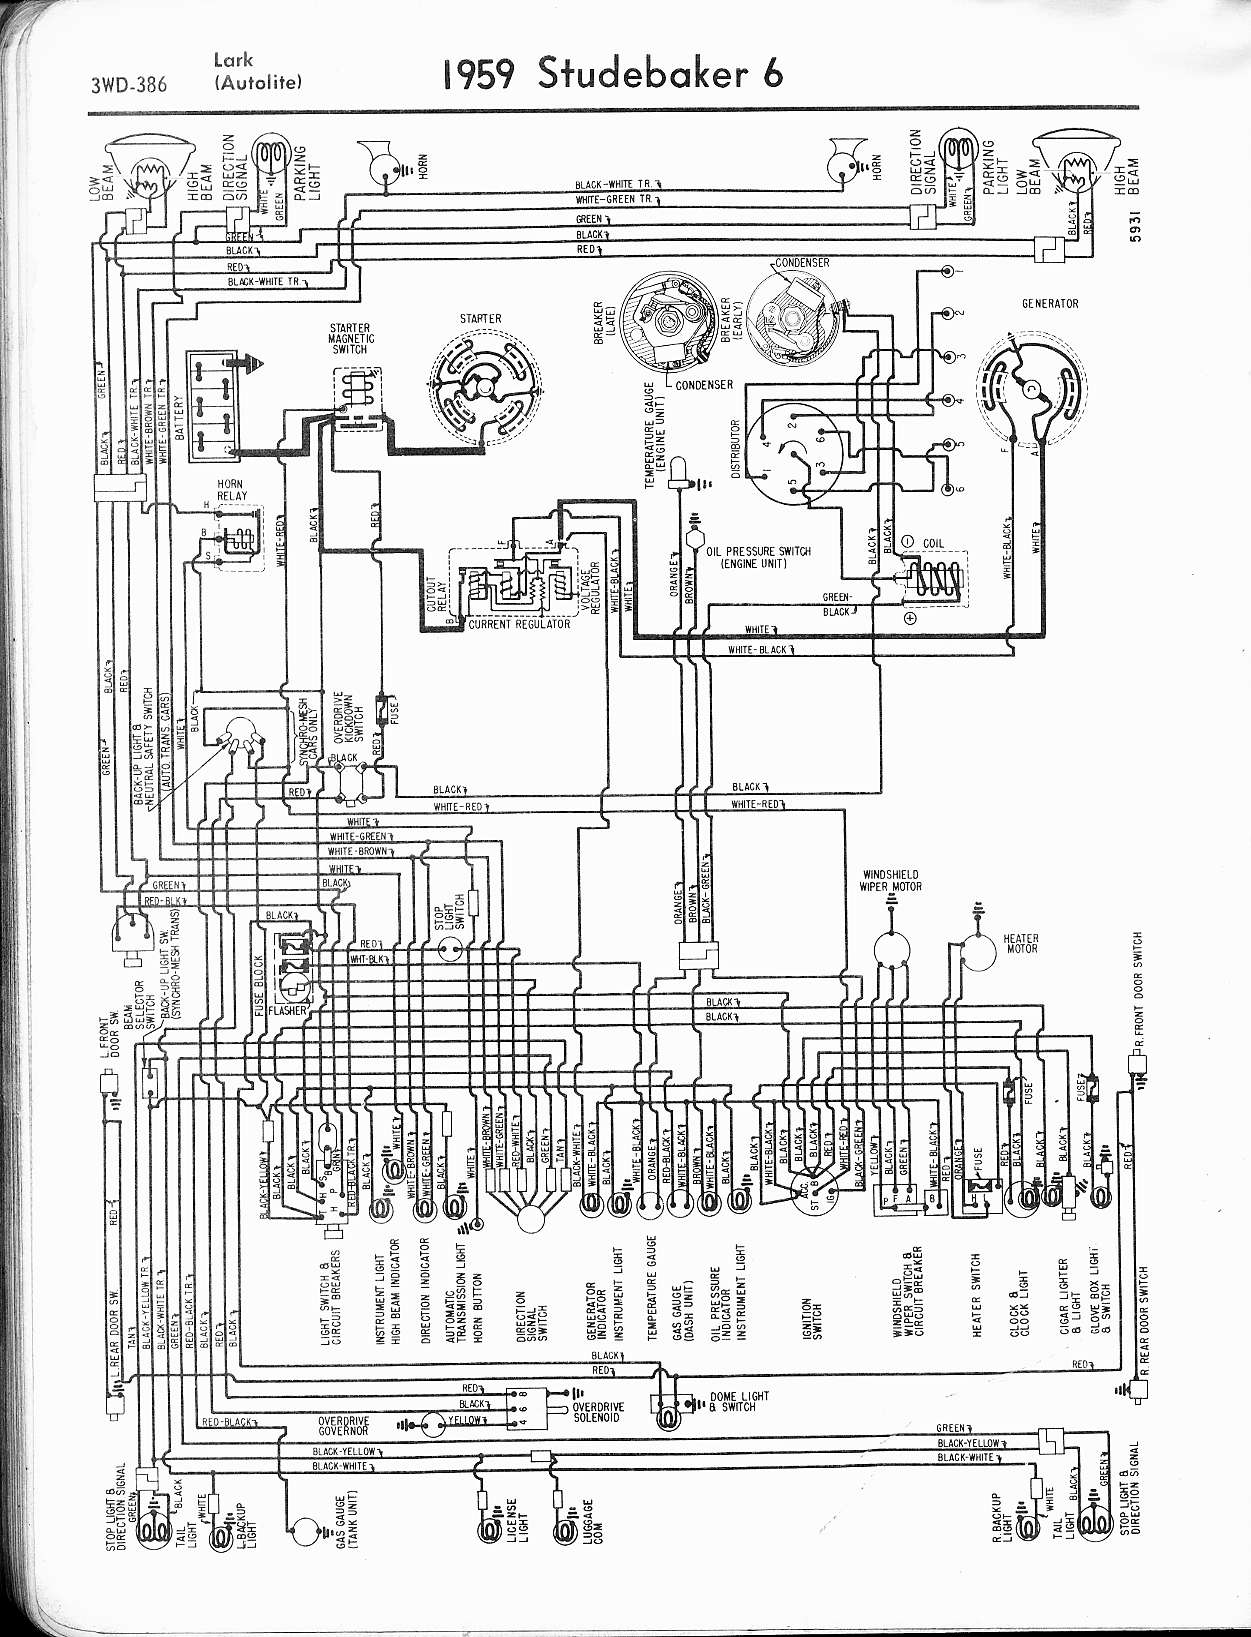 [ZHKZ_3066]  Studebaker wiring diagrams - The Old Car Manual Project | Lark Wiring Diagram |  | The Old Car Manual Project